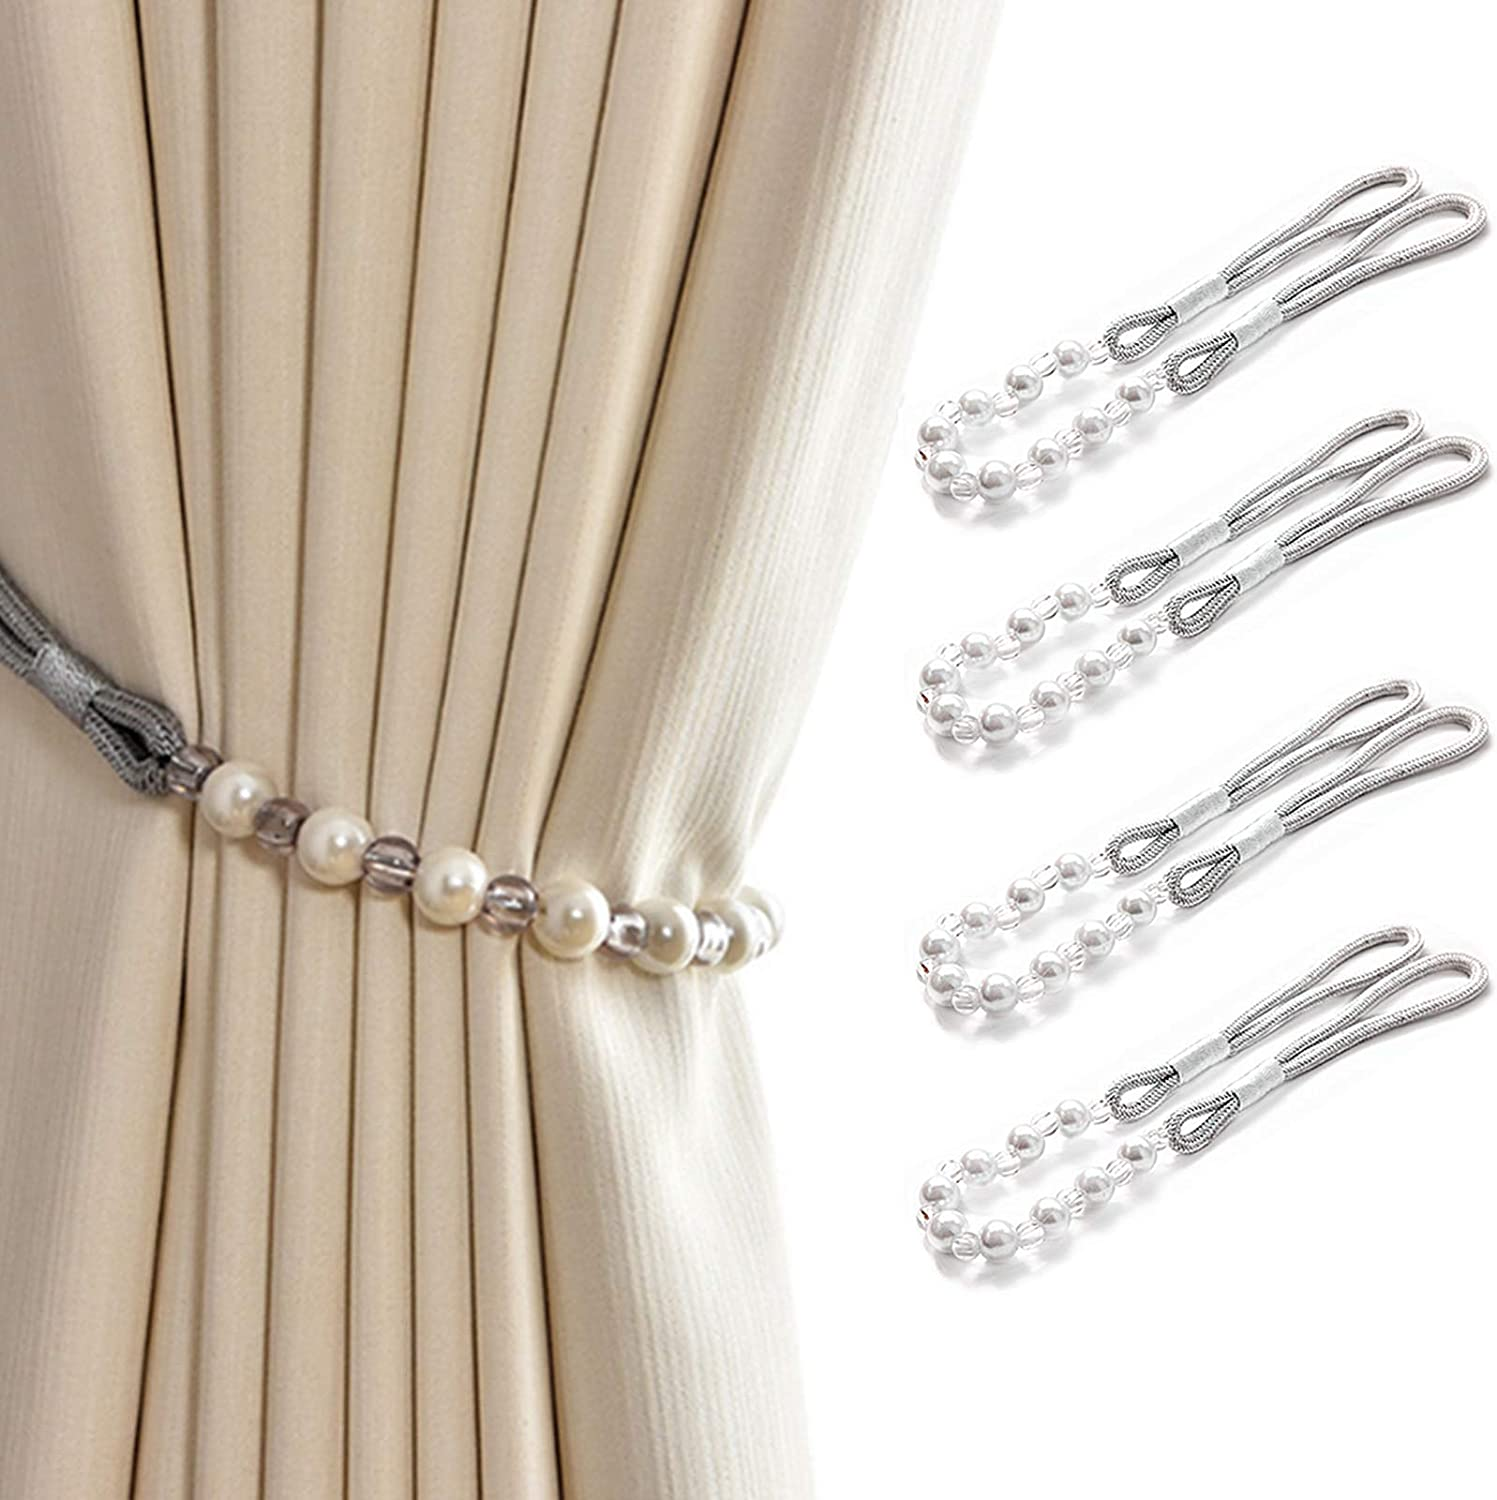 SWTOOL 4PCS Artificial Ranking integrated 1st place Pearls Curtain Holdbacks Beads Elegant Fashionable S